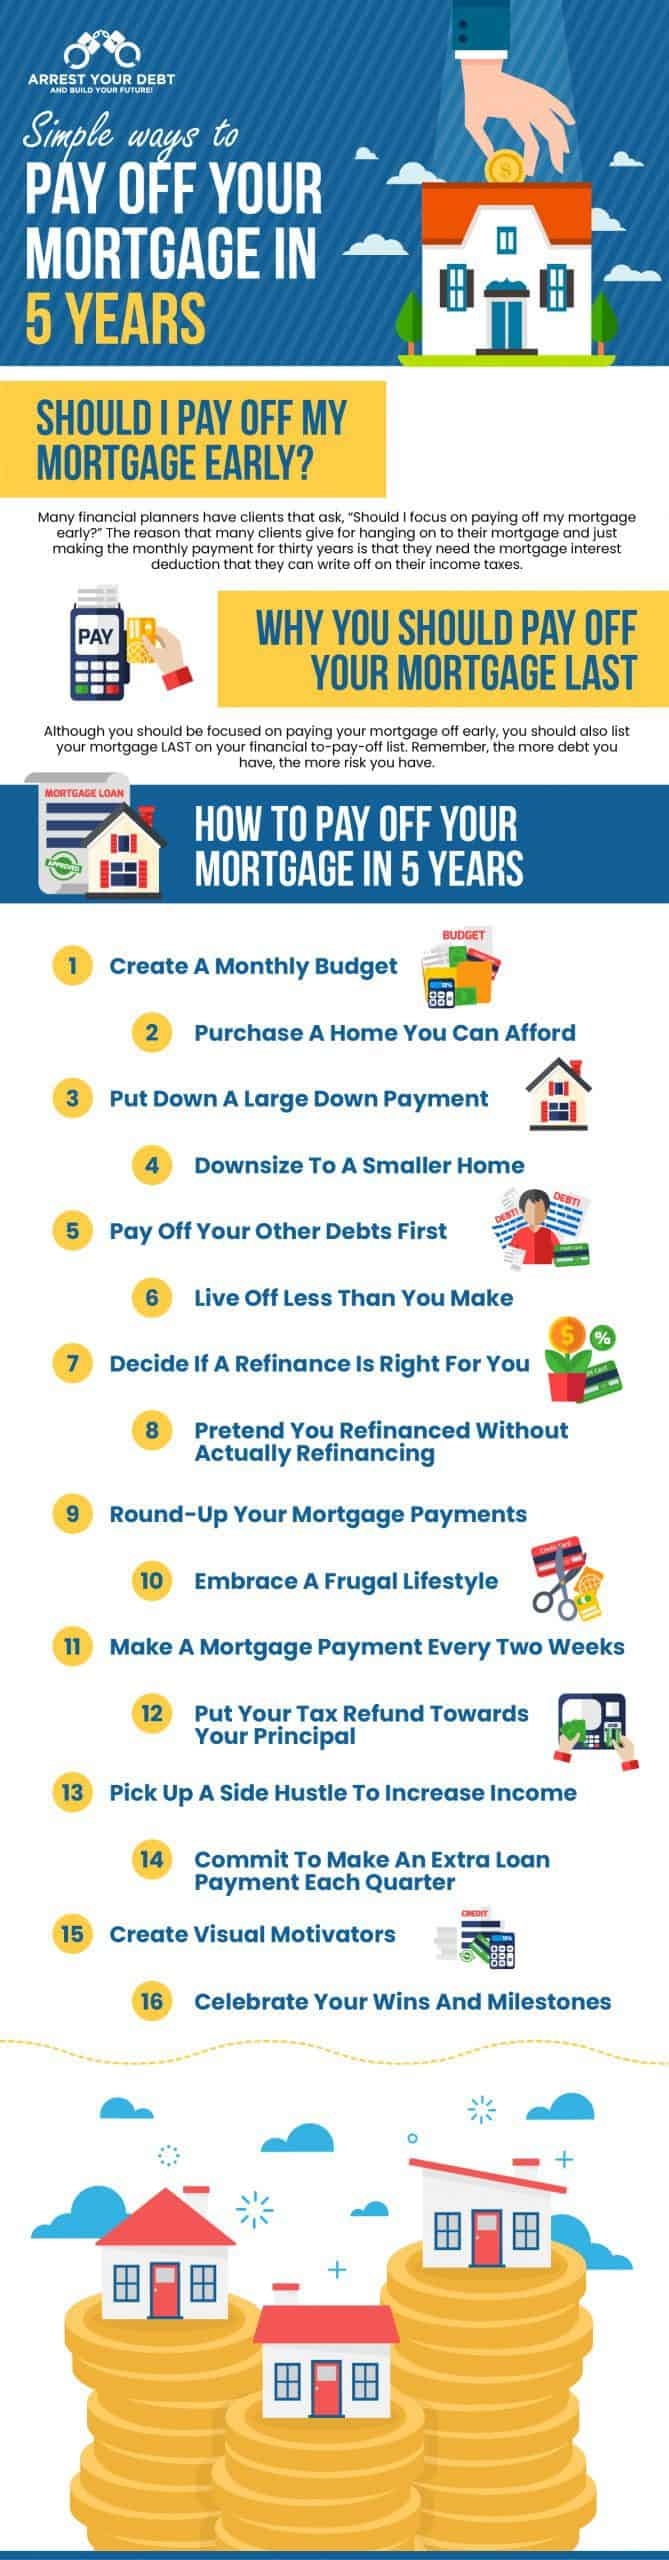 17 ways to pay off a mortgage in 5 years infographics